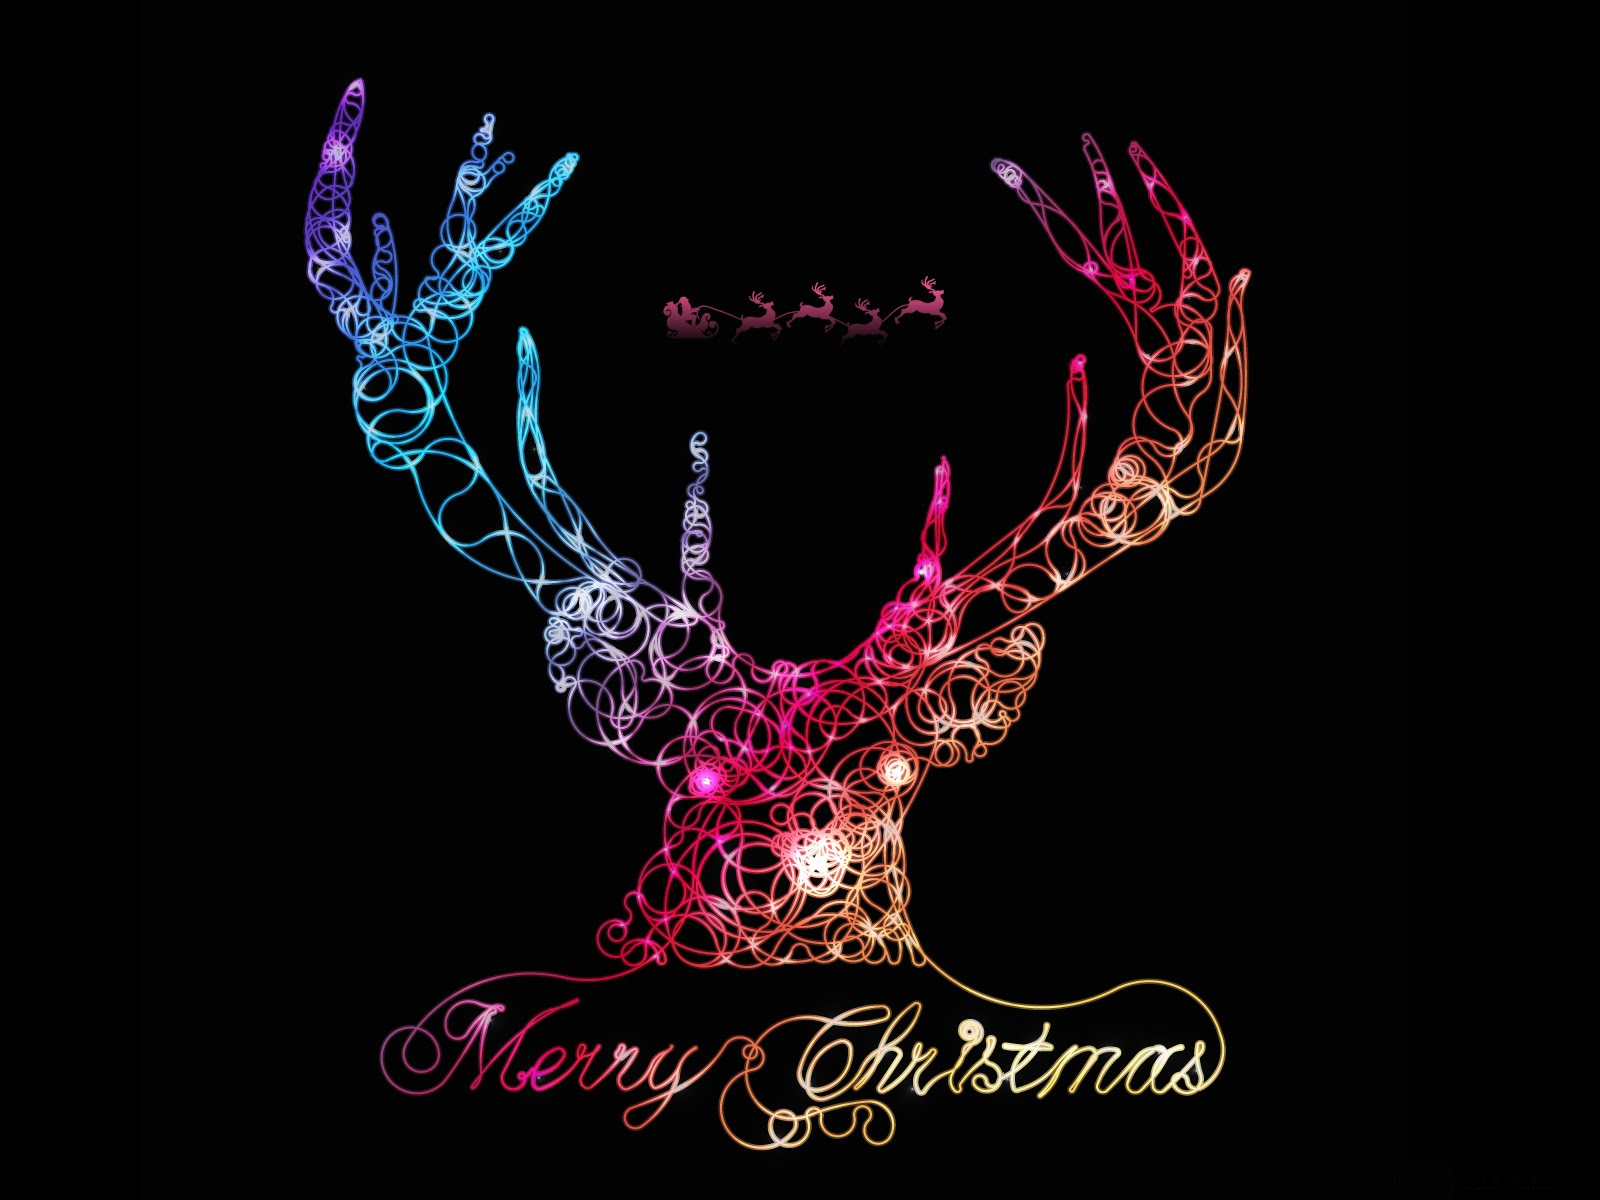 Merry Christmas Wall Lights : Merry Christmas Wallpaper 2014 Desktop Free Download Poetry About Wishes Festivals